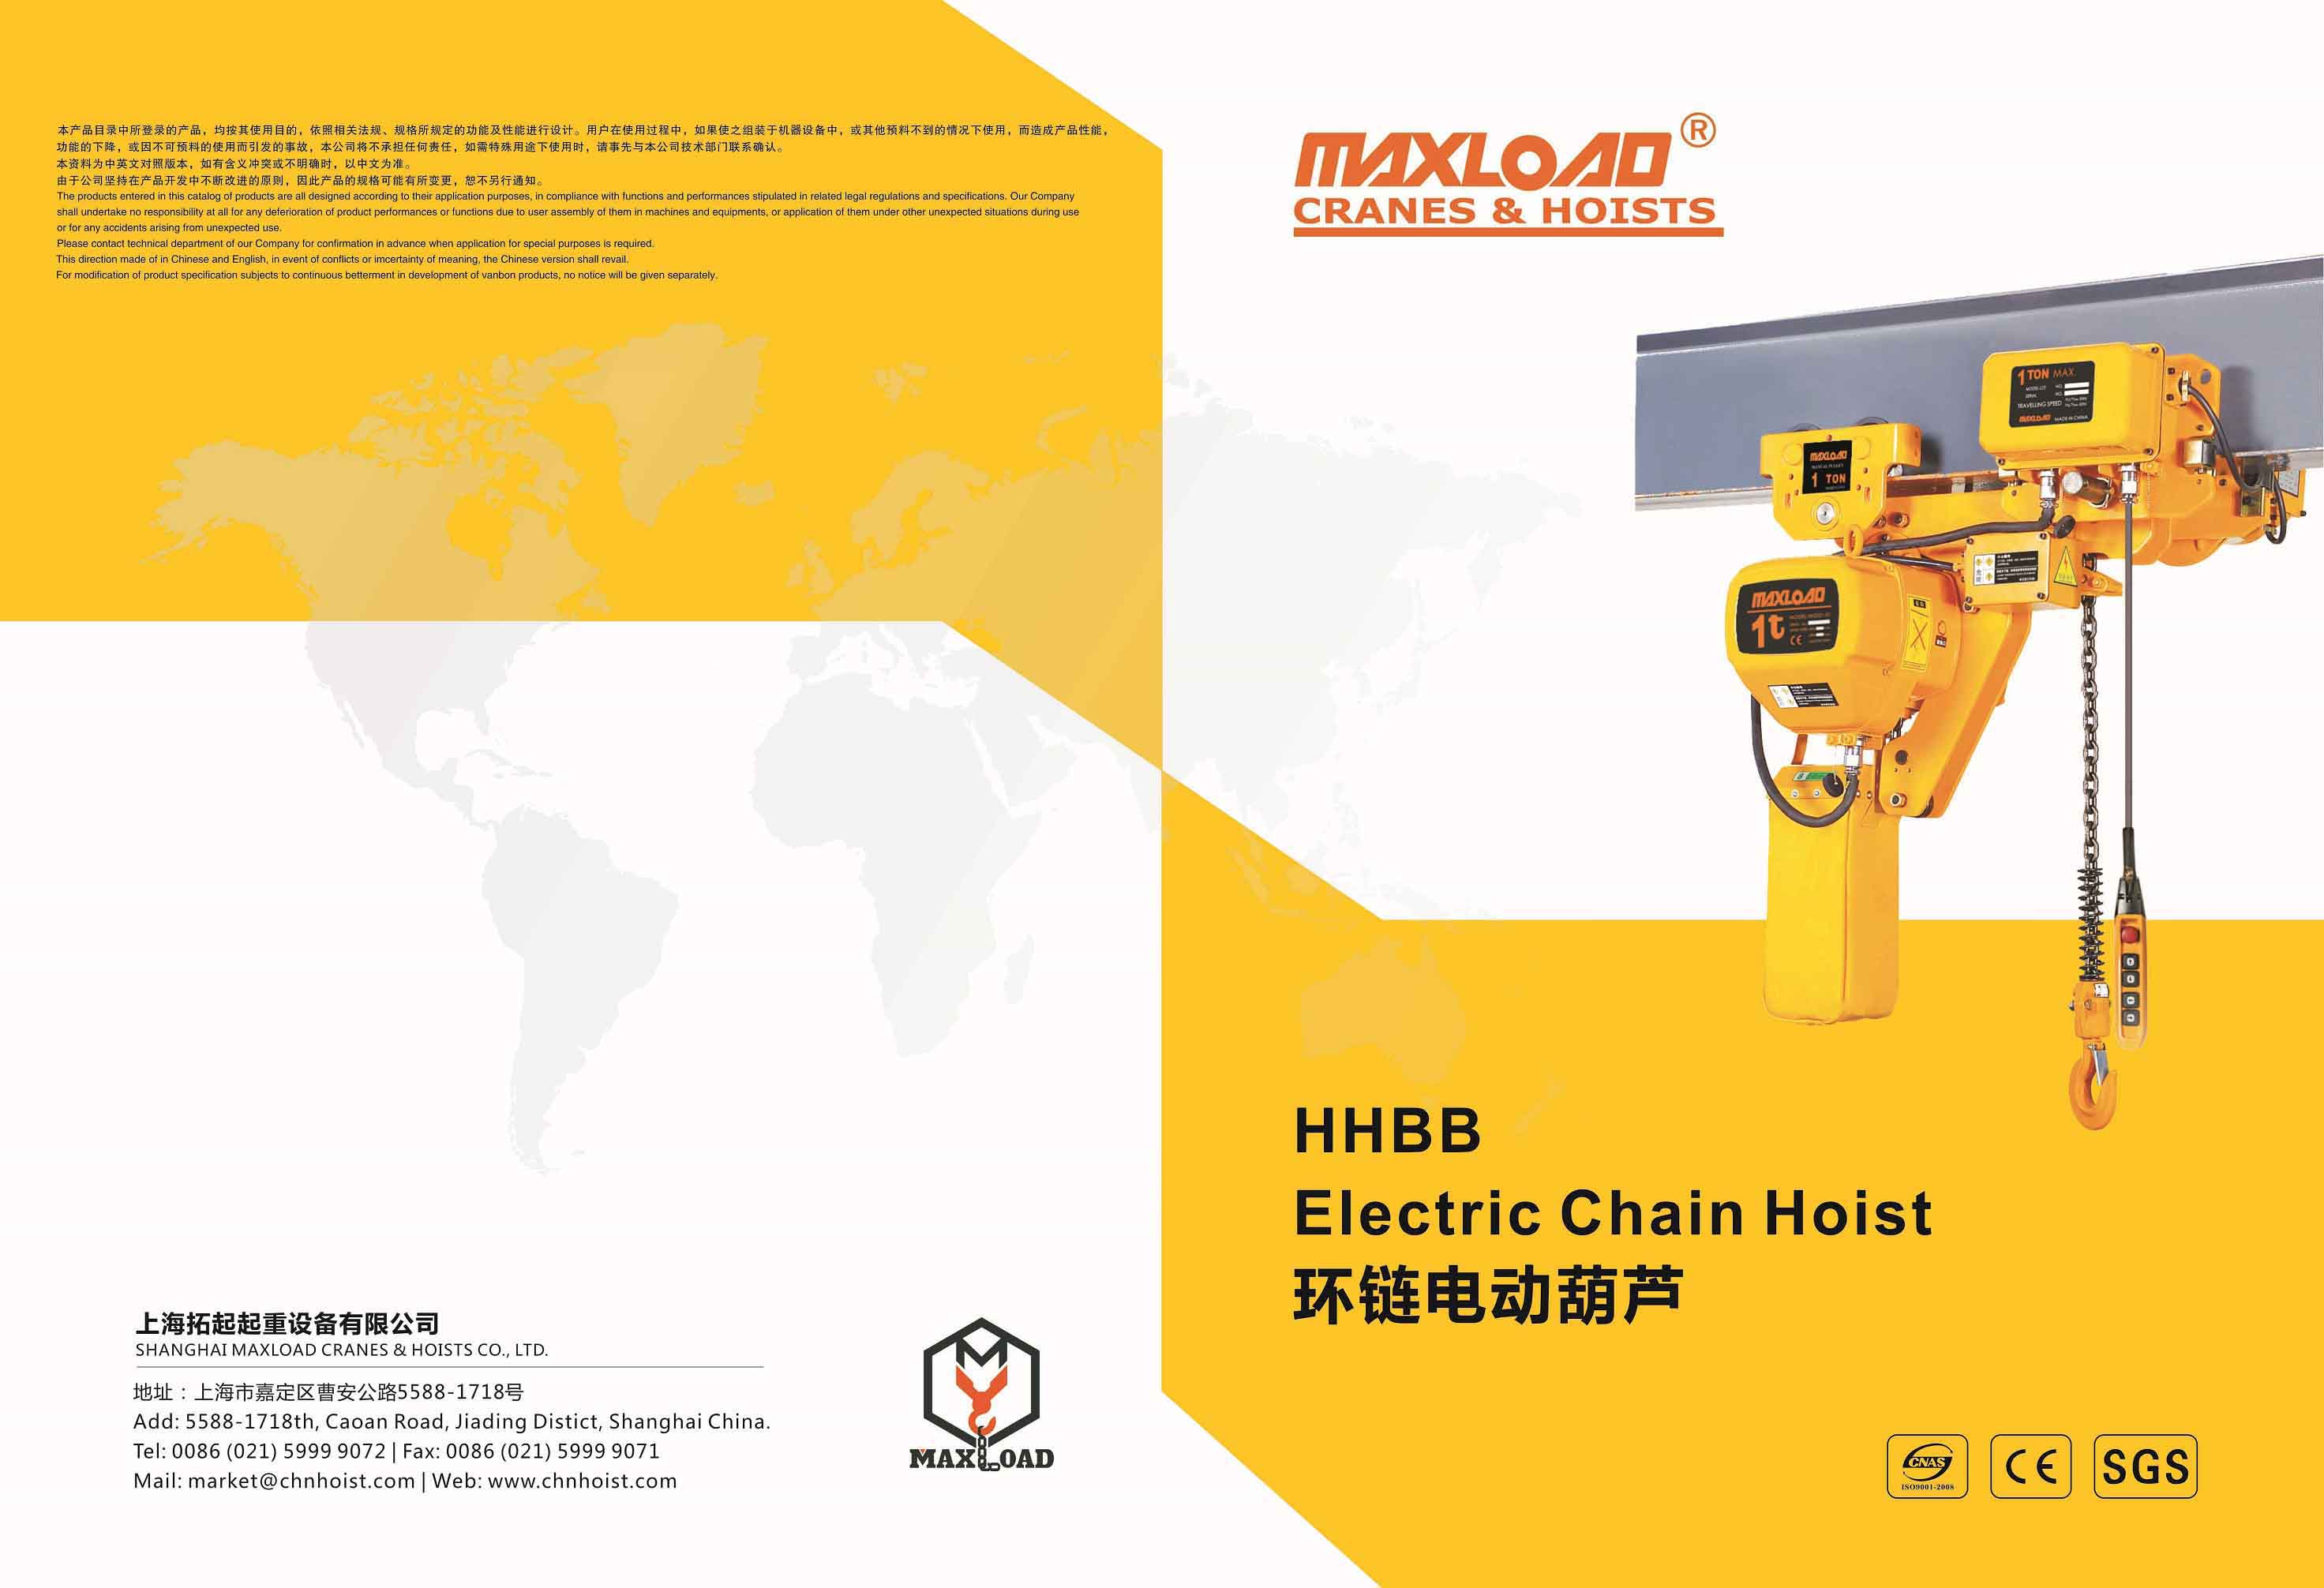 Electric Chain Hoist Brochure